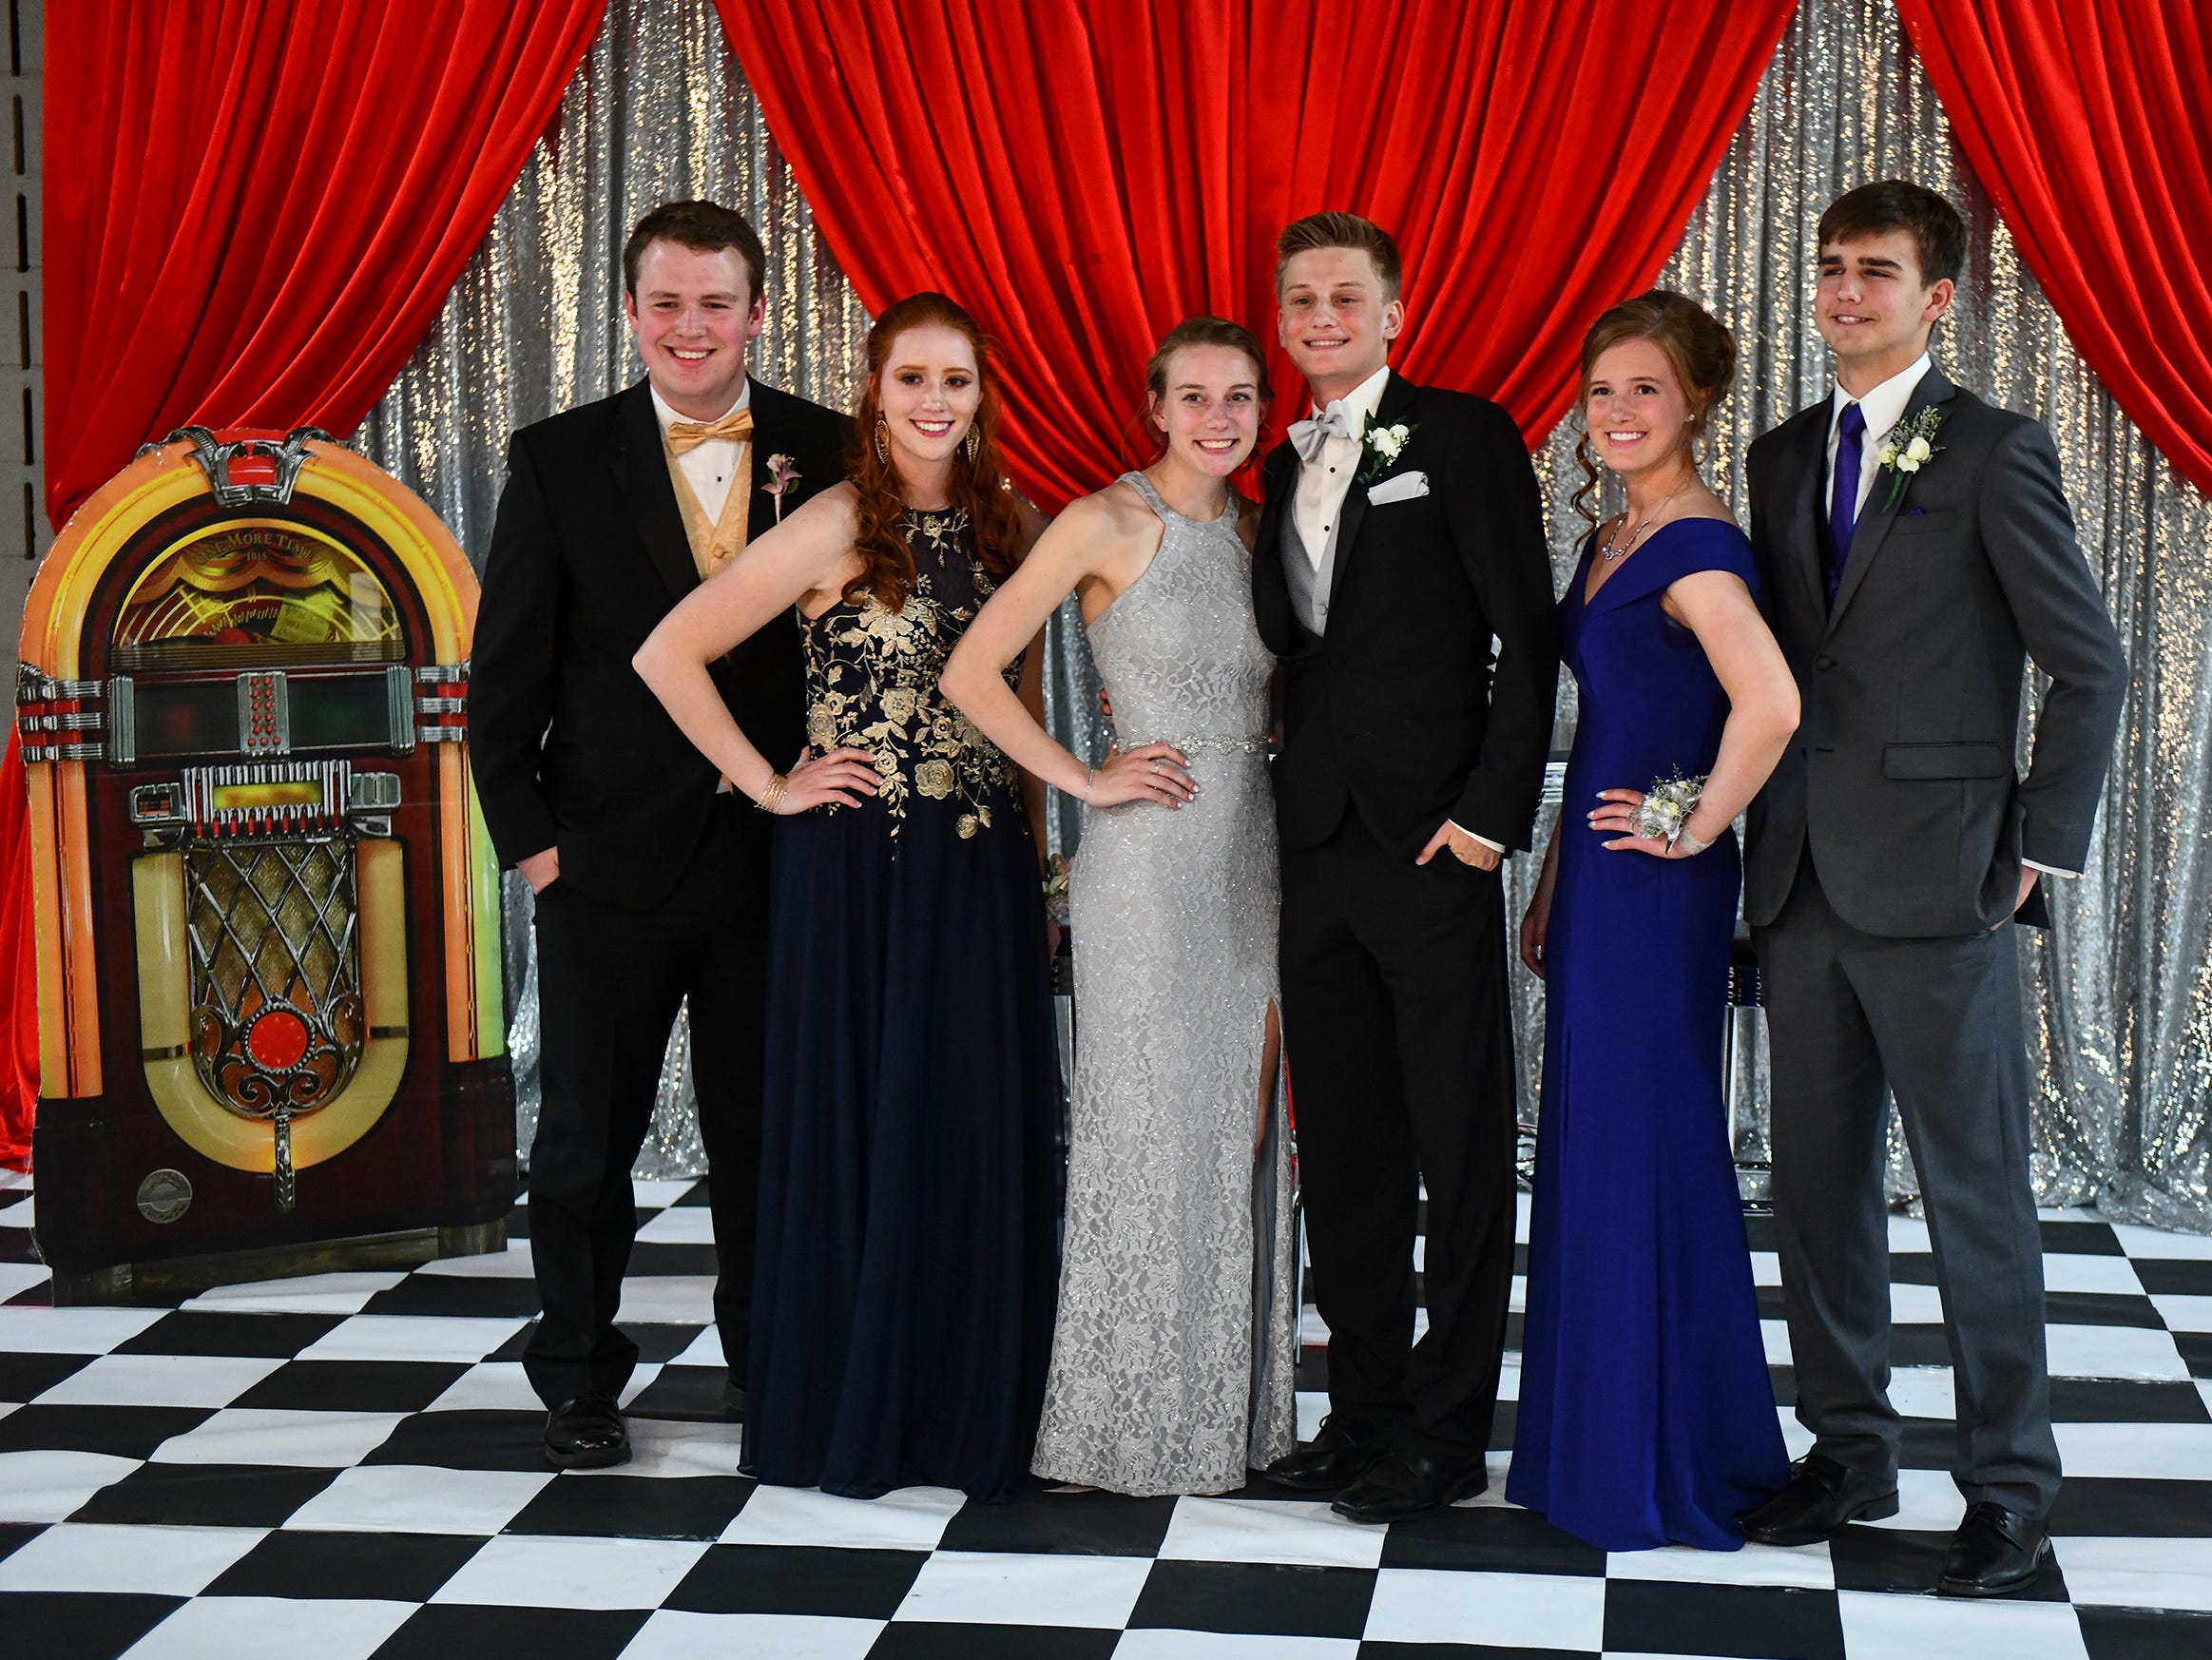 Promgoers gather for a photo during Sartell High School prom Saturday, May 4, in St. Cloud.